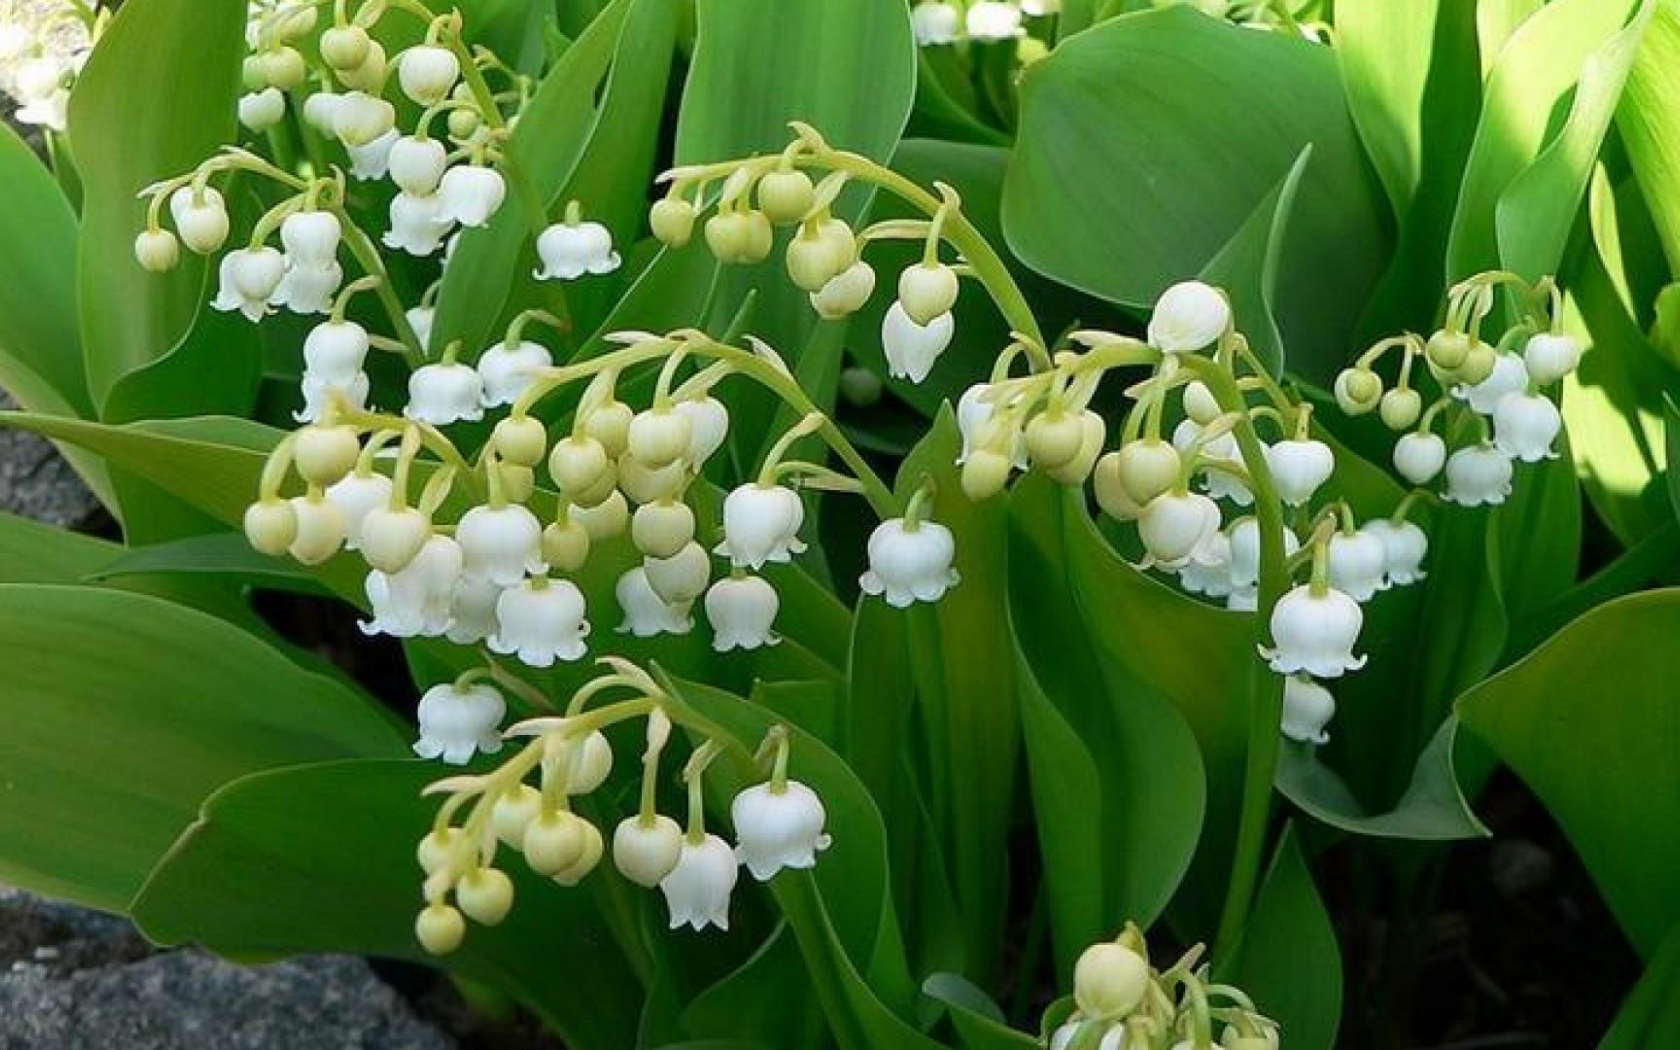 Free Download Lily Of The Valley Wallpaper 73706 Hd Wallpapers